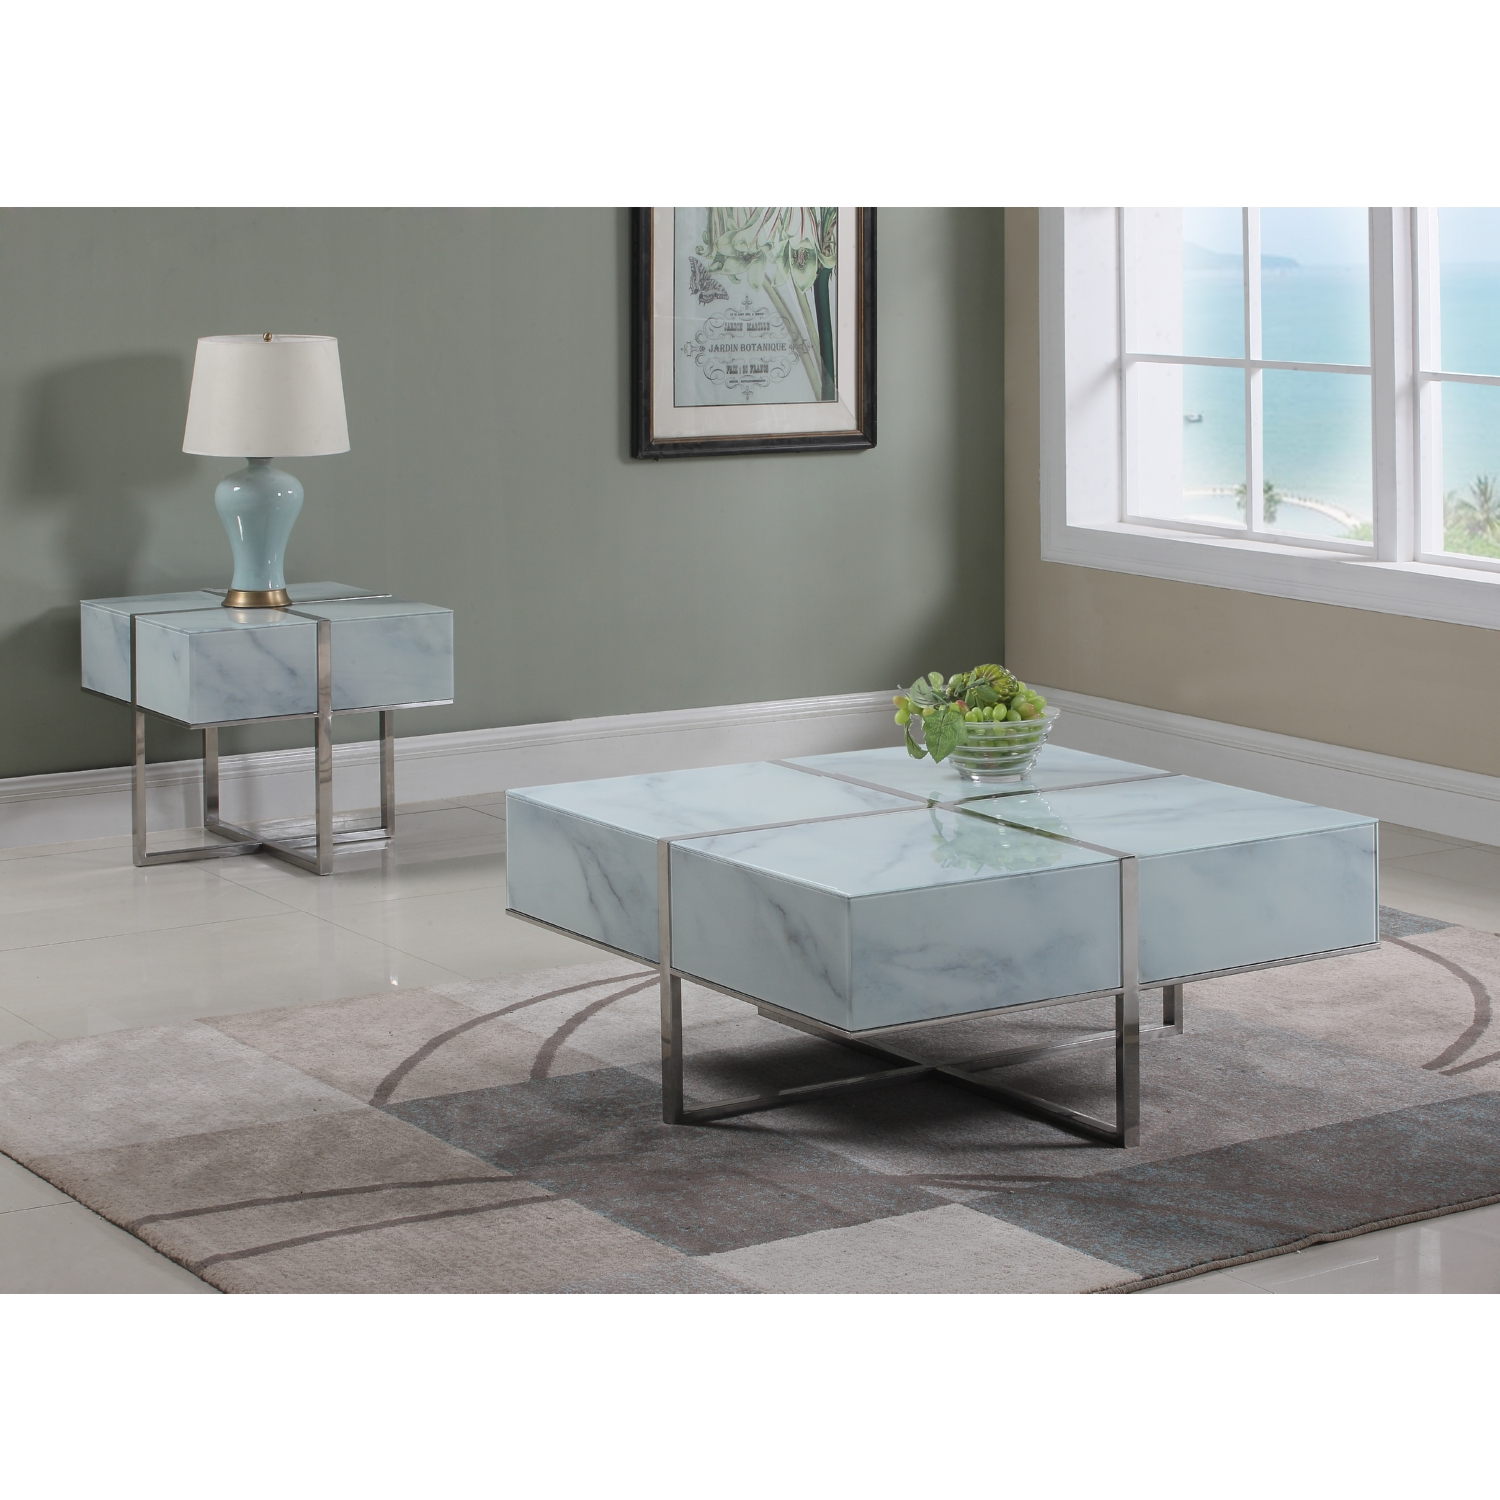 Meridian Furniture 224 C Logan Coffee Table in Glass Marble Look